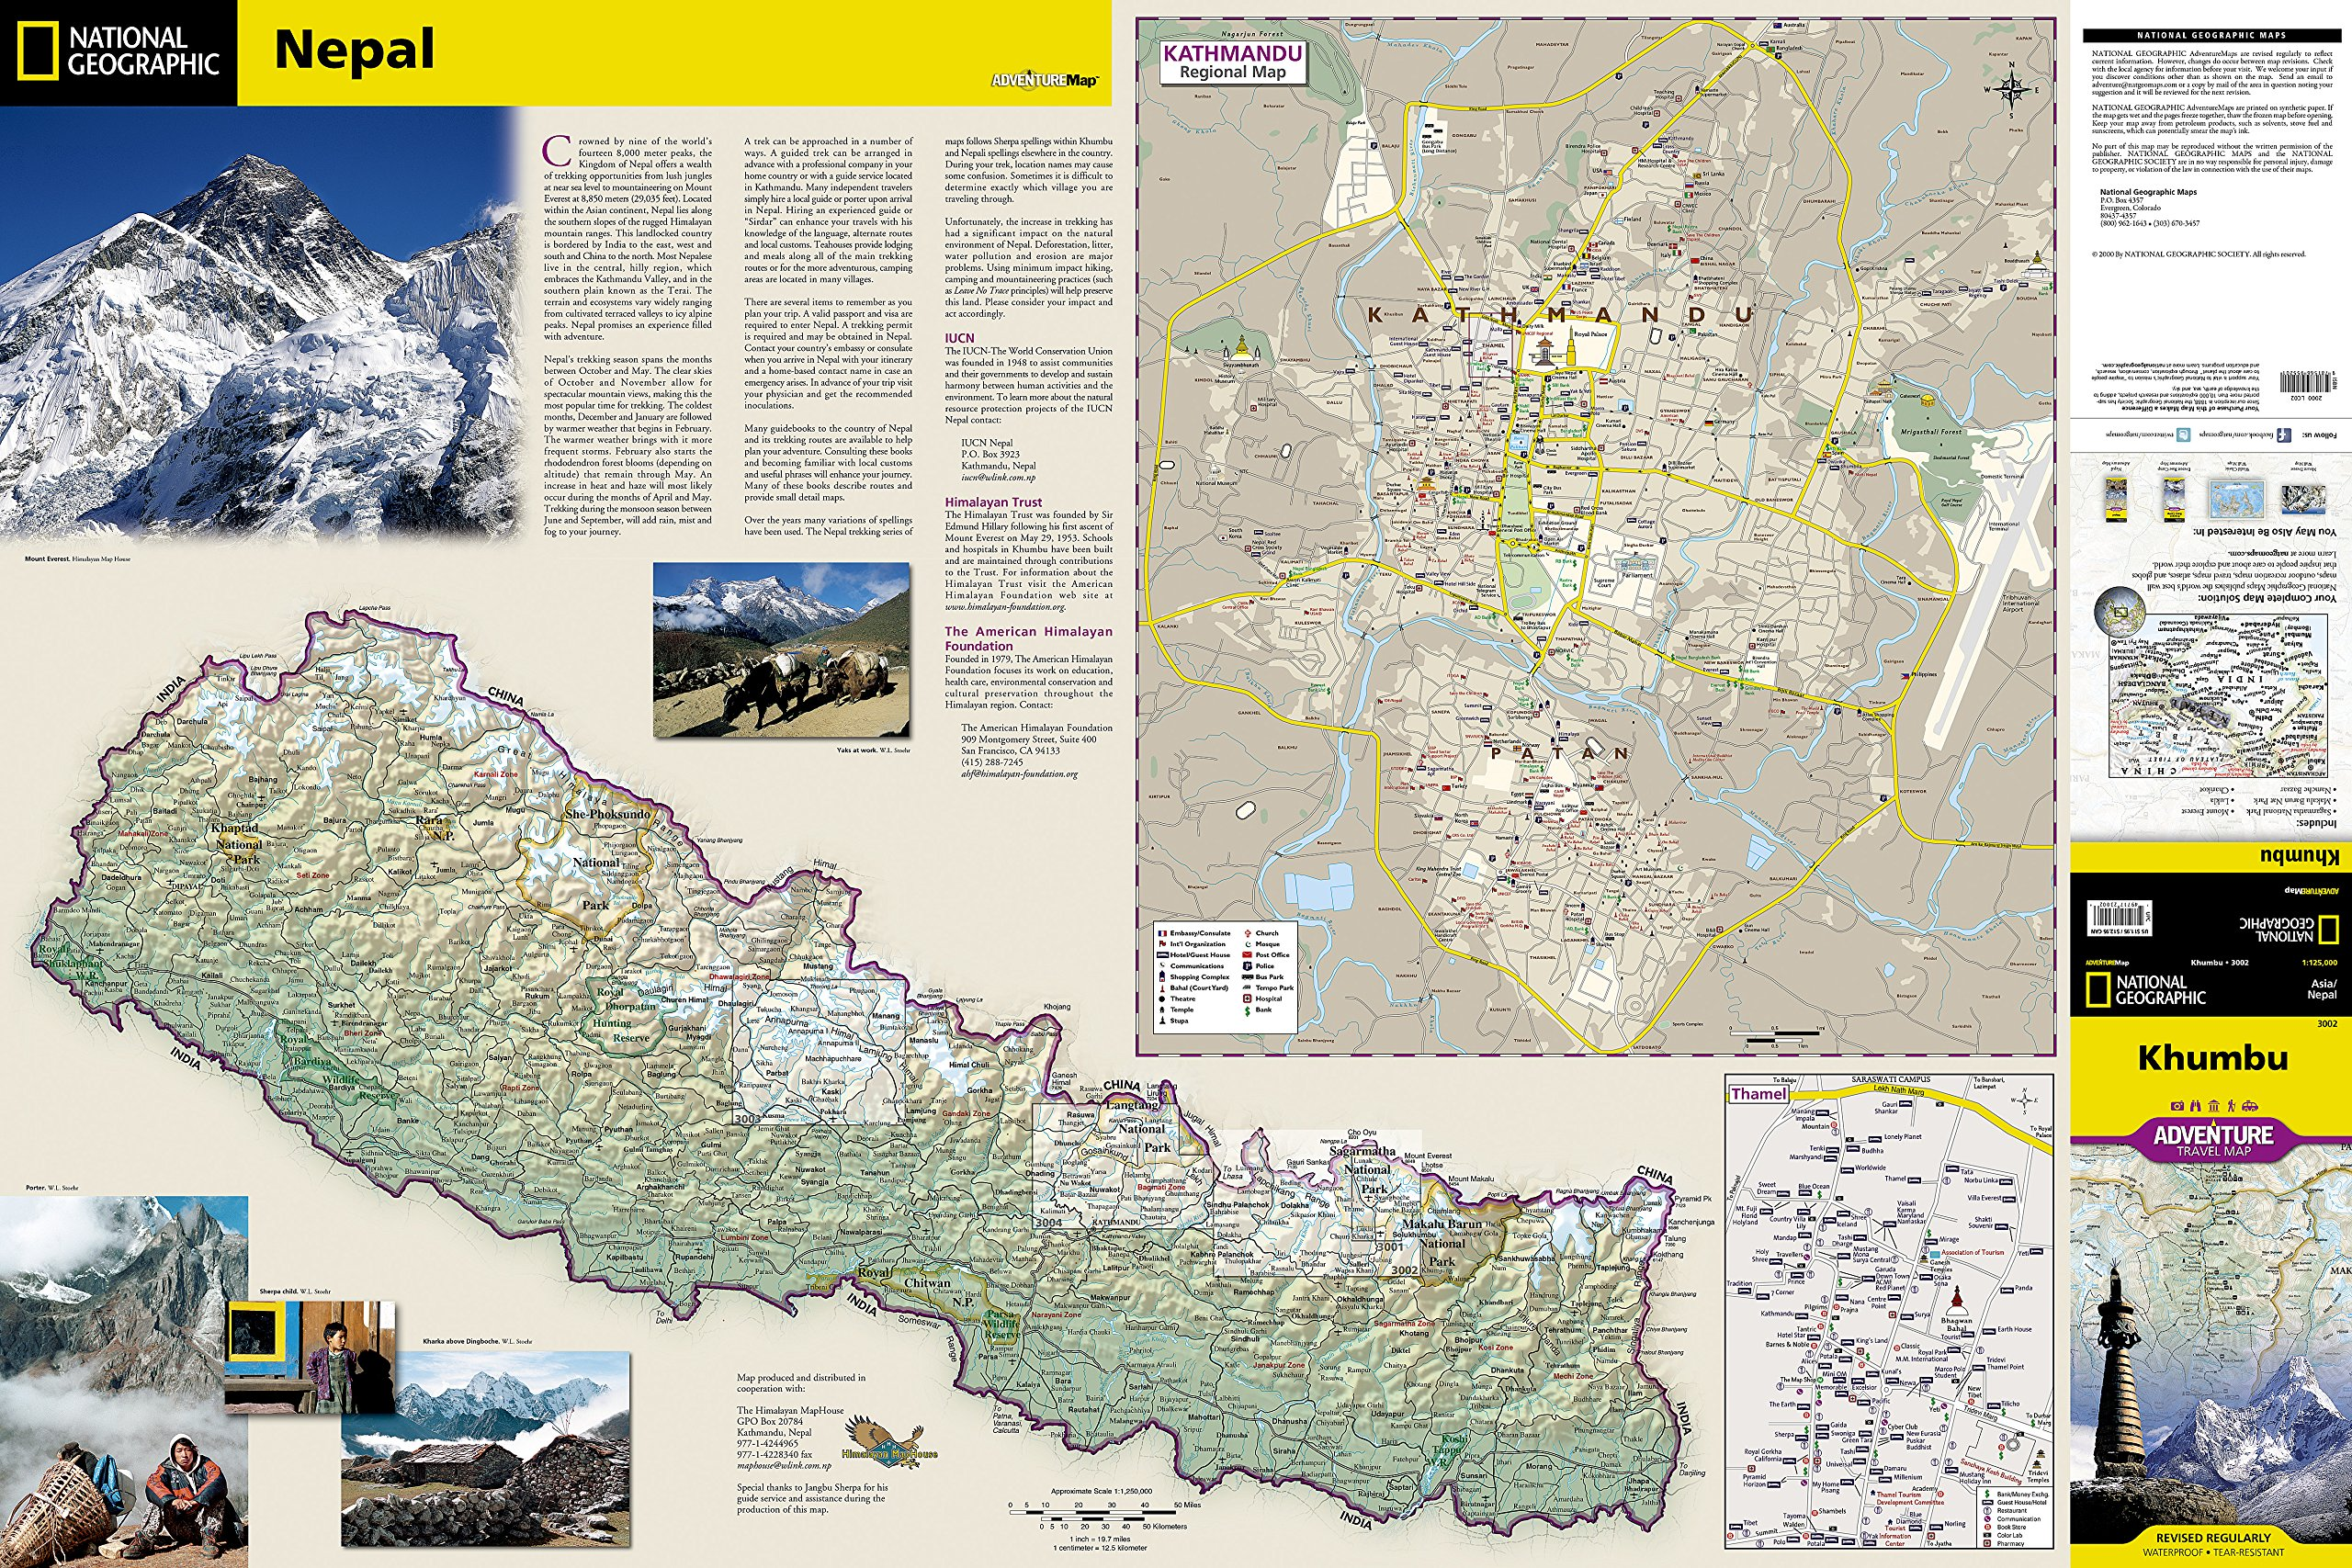 Khumbu nepal national geographic adventure map national khumbu nepal national geographic adventure map national geographic maps adventure 9781566955201 amazon books gumiabroncs Image collections